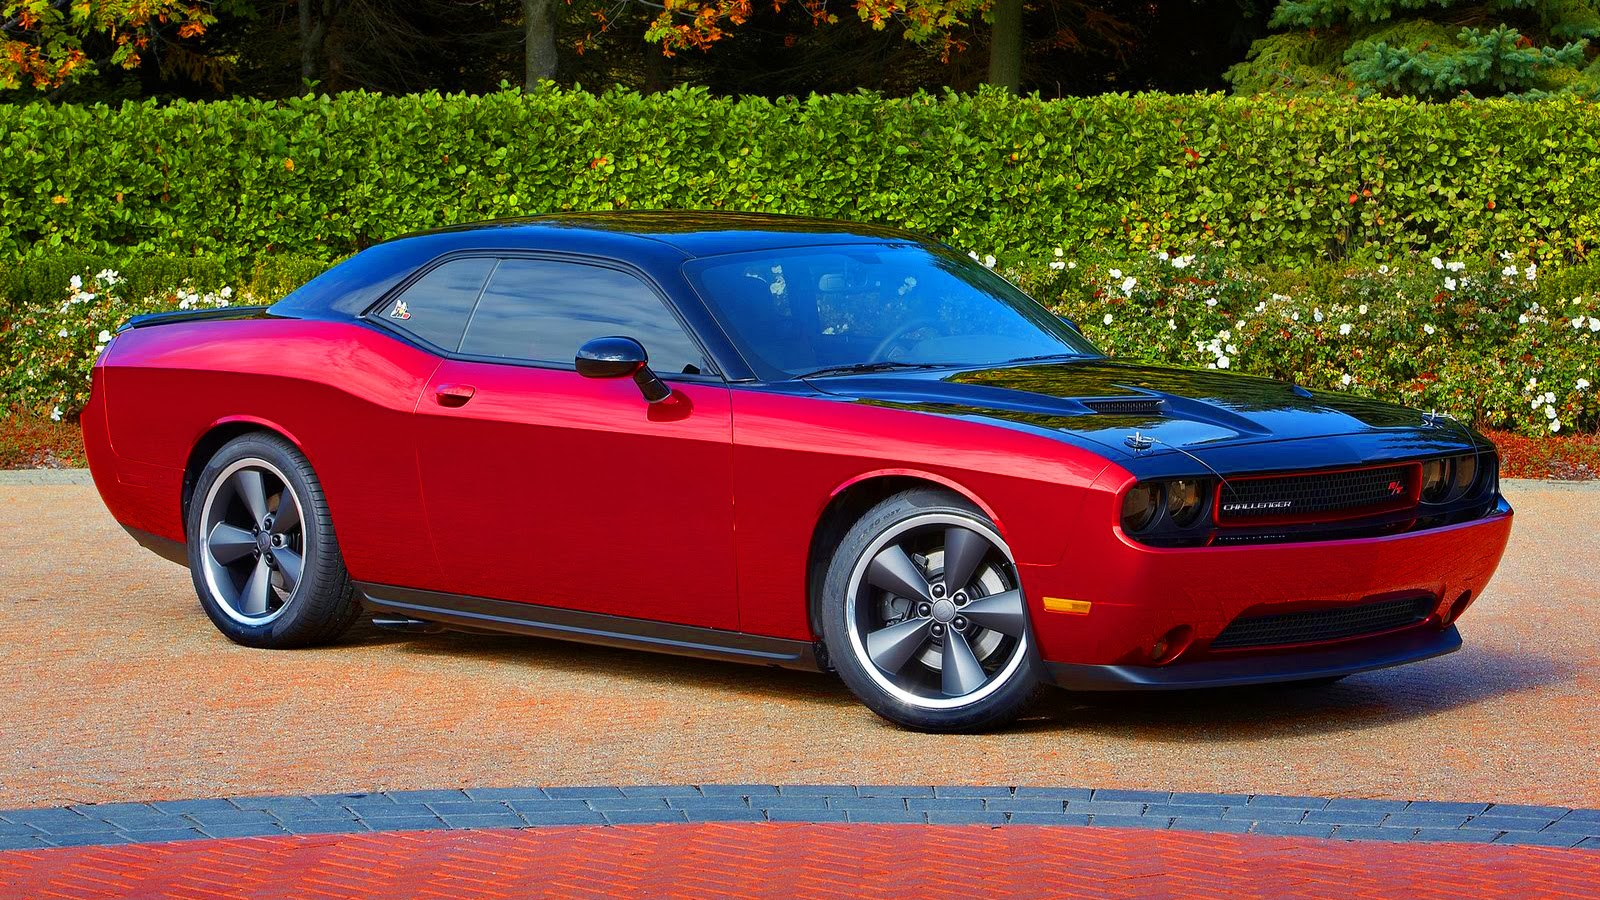 dodge challenger r t scat package 2014 5 7 hemi v8 carwp. Black Bedroom Furniture Sets. Home Design Ideas